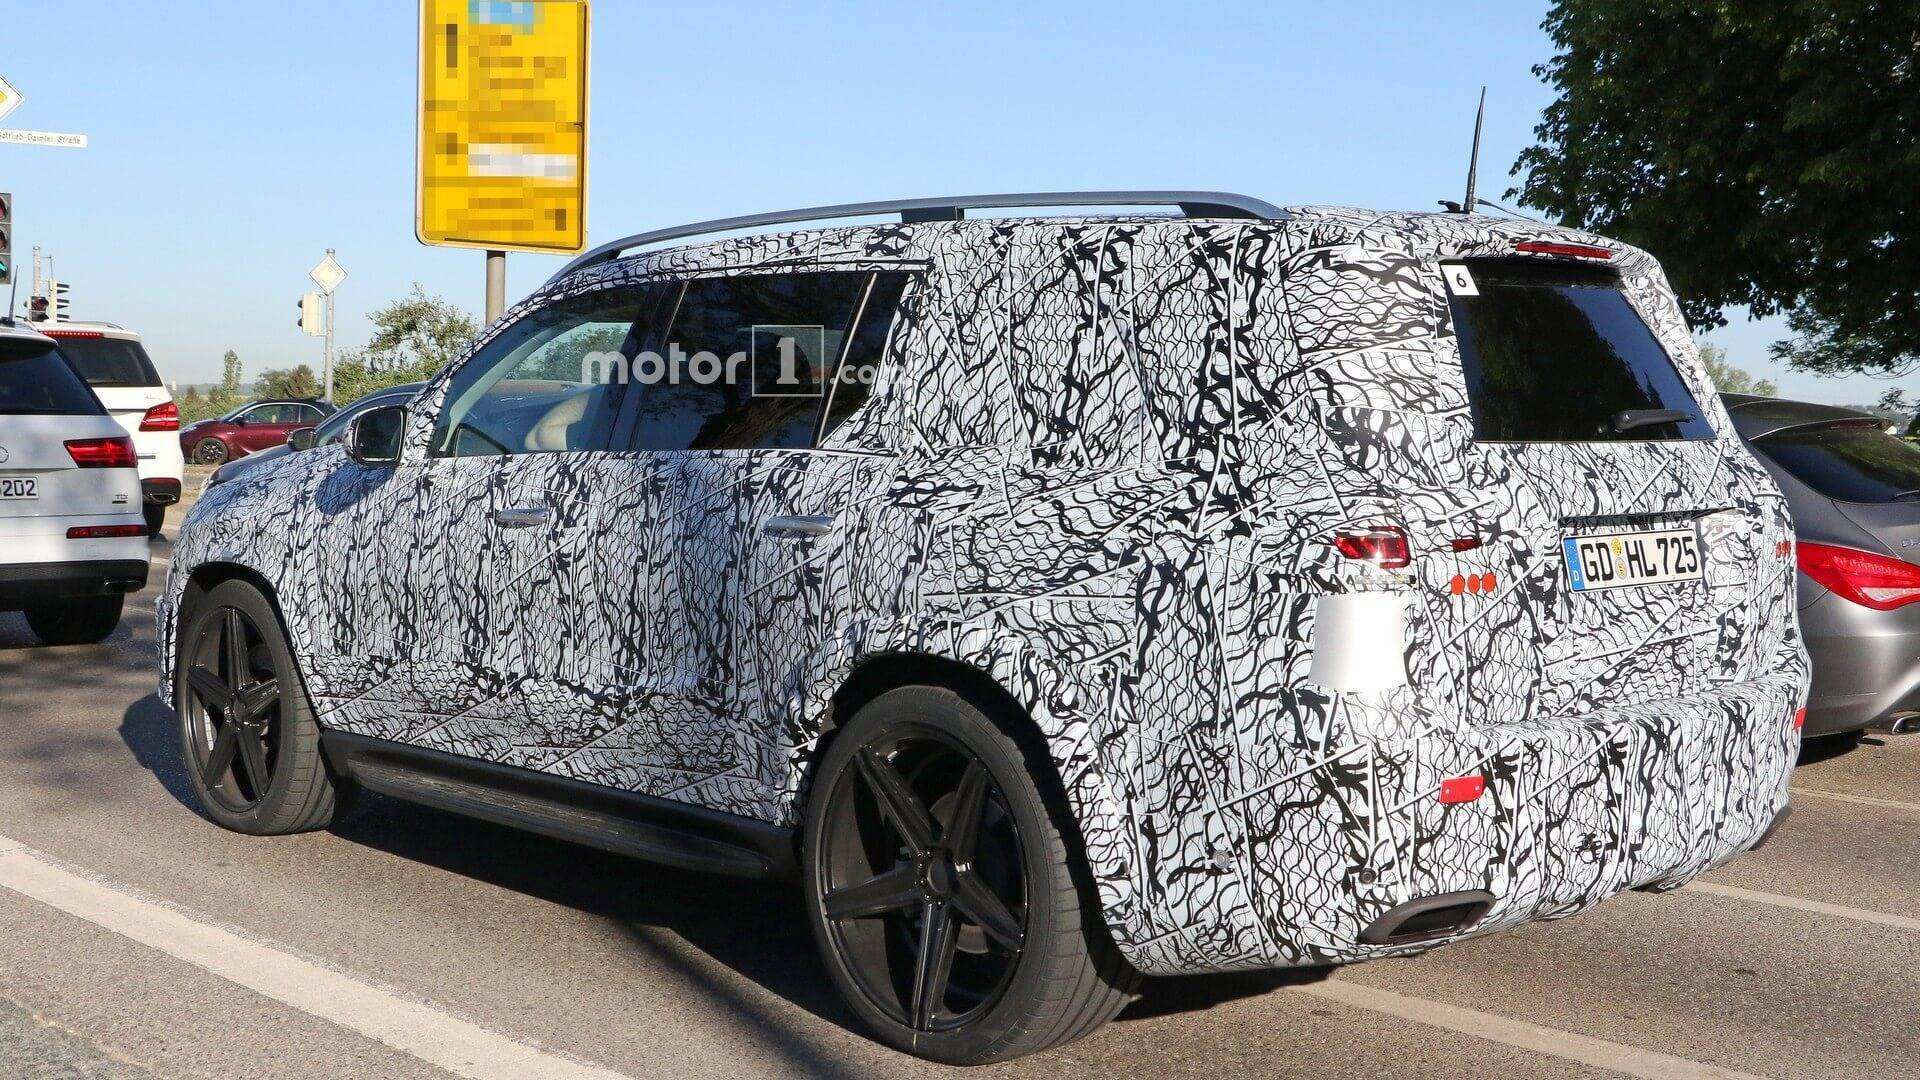 61 New Mercedes Maybach Gls 2020 Exterior by Mercedes Maybach Gls 2020